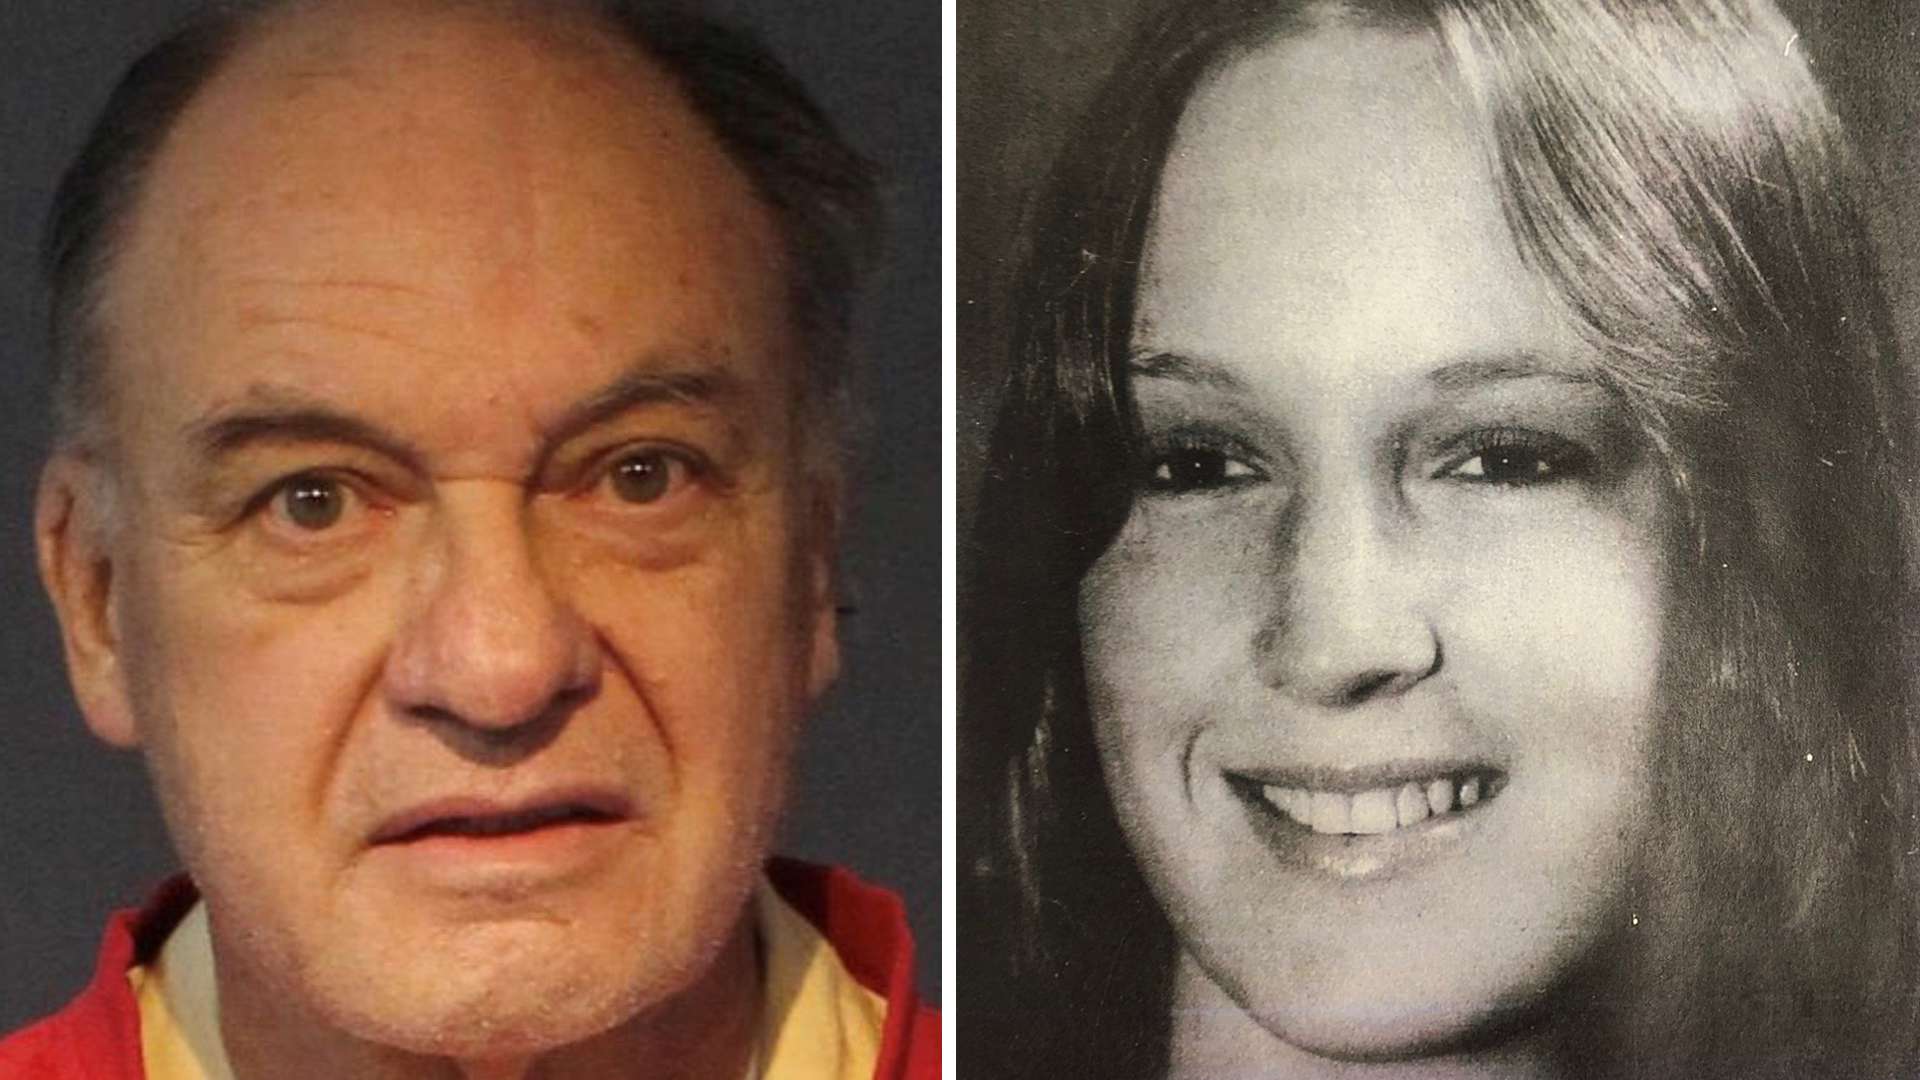 Charles Gary Sullivan and Julia Woodward are seen in undated photos provided by the Washoe County Sheriff's Office on Nov. 15, 2019.